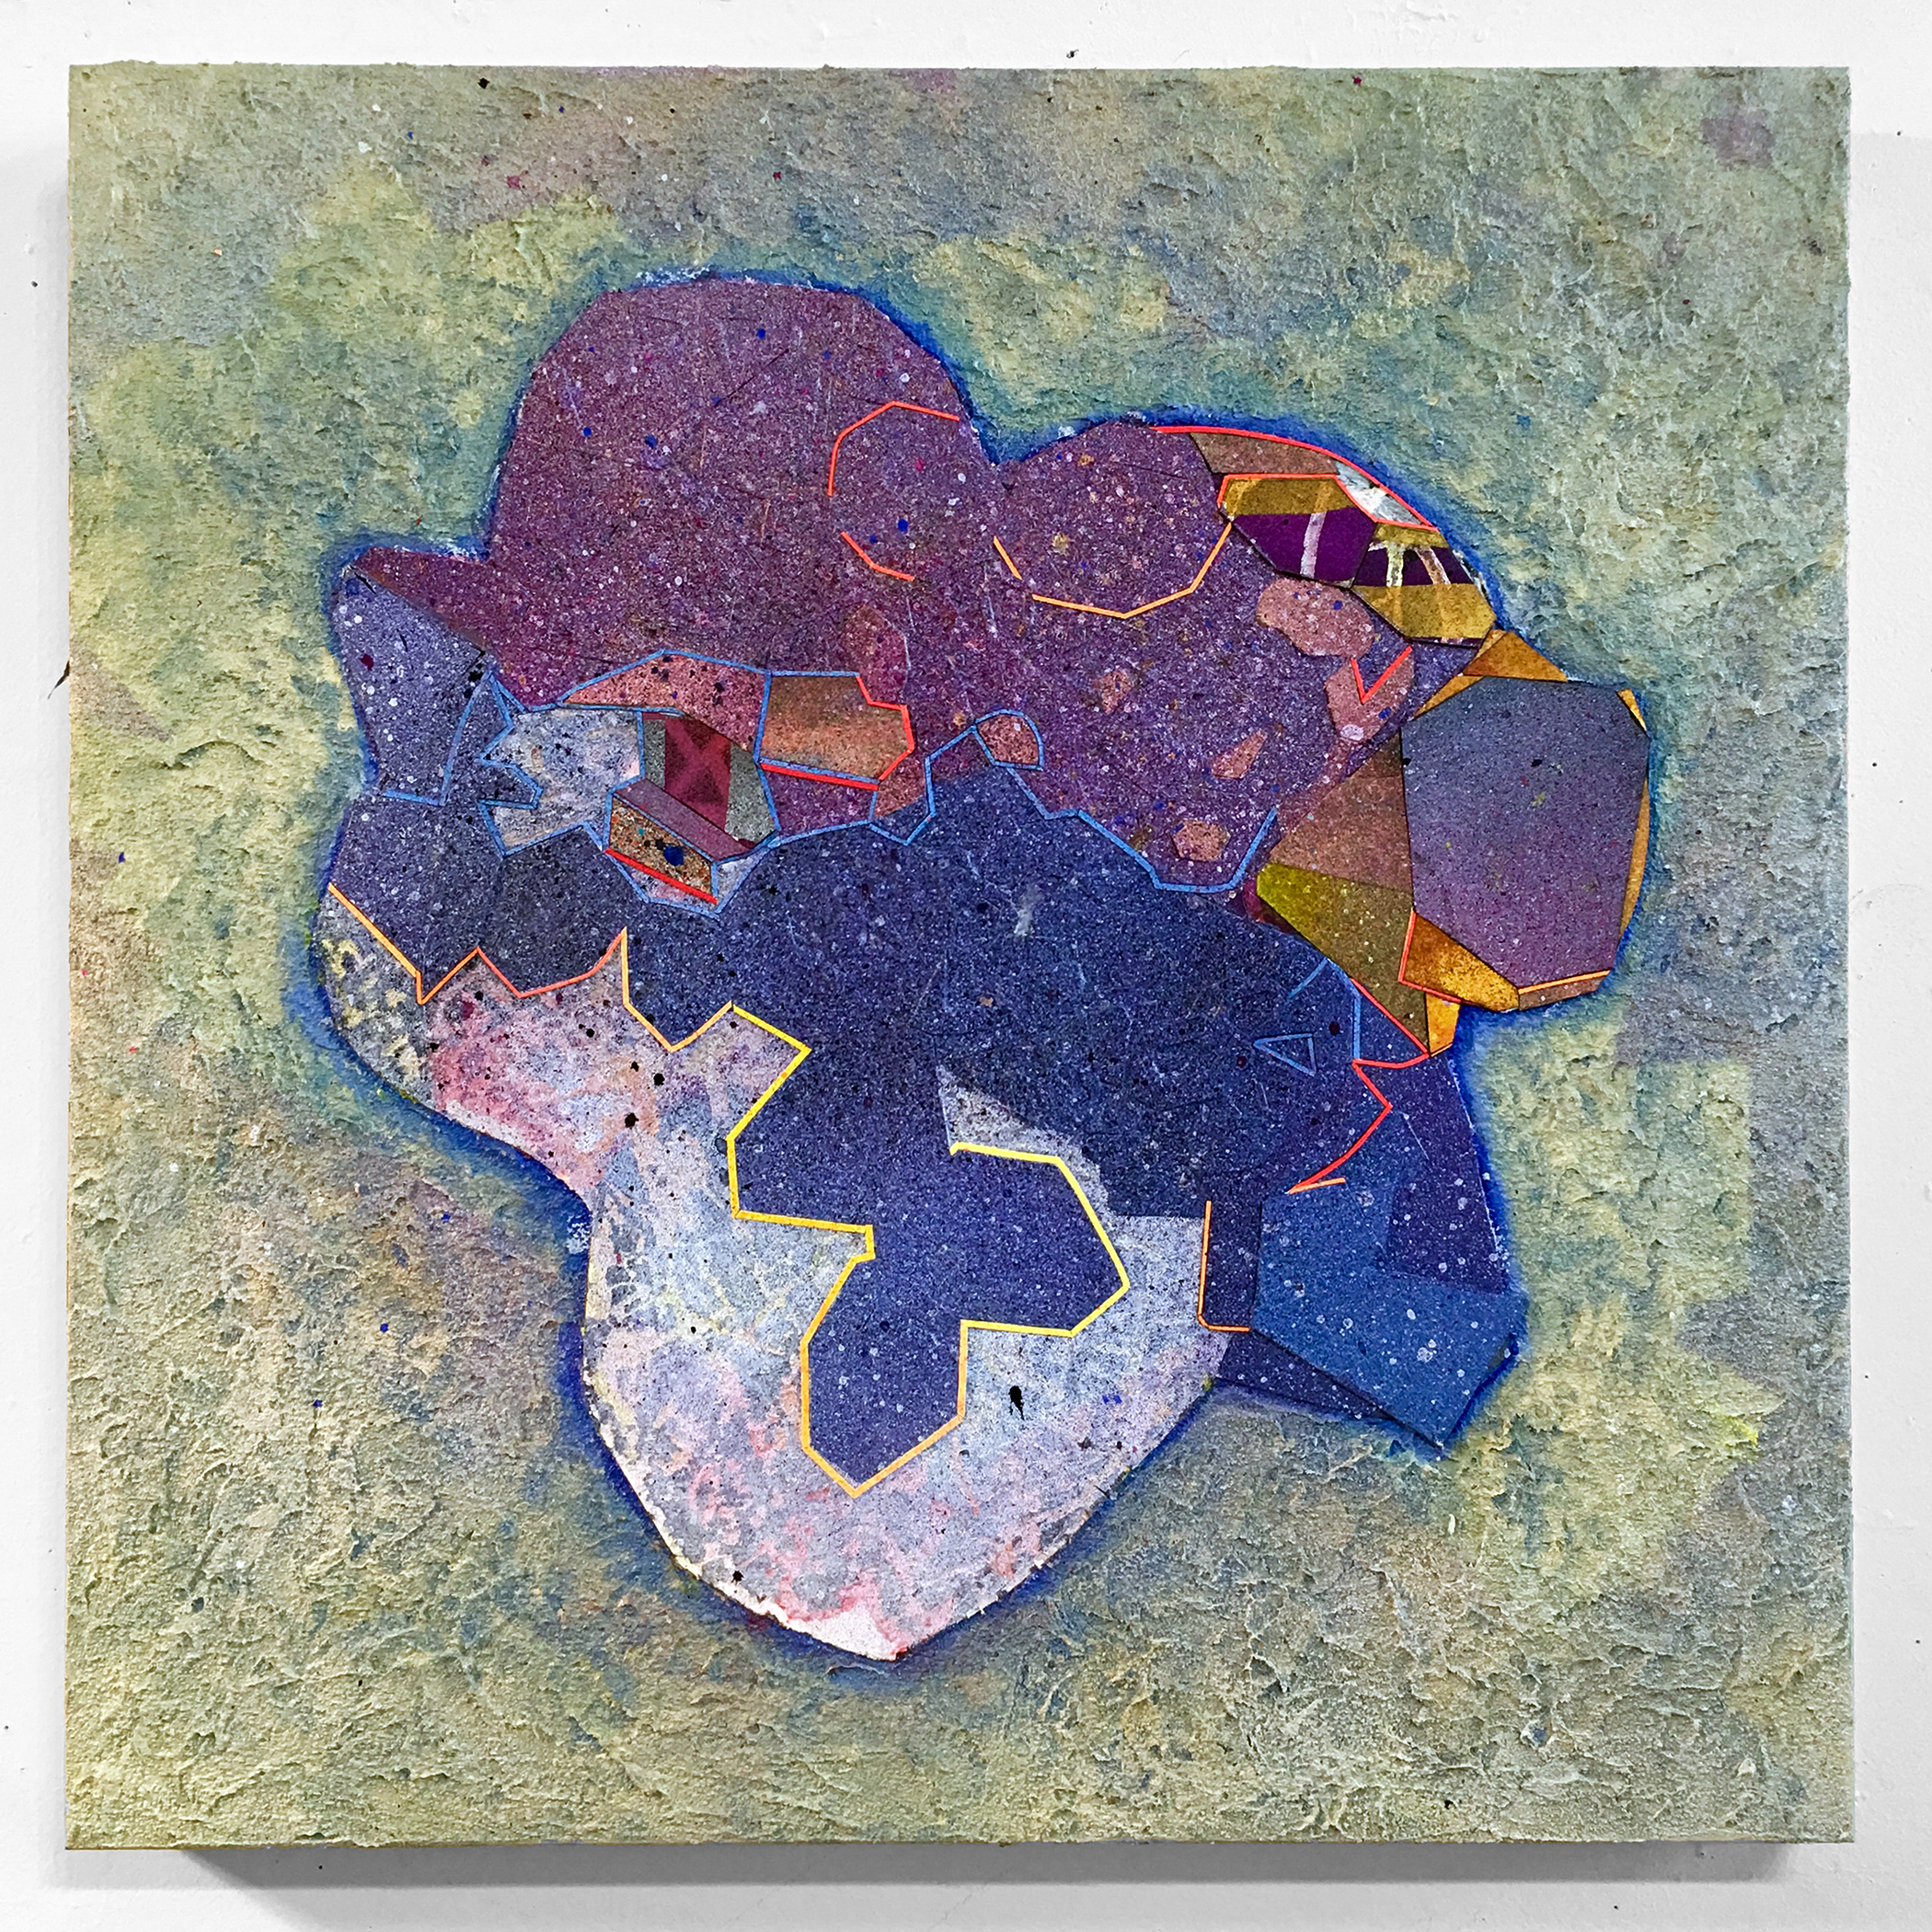 All Heart_NancyBaker_2017_Paper and piant mounted on wood panel_18inches x 18inches_$1800.jpg